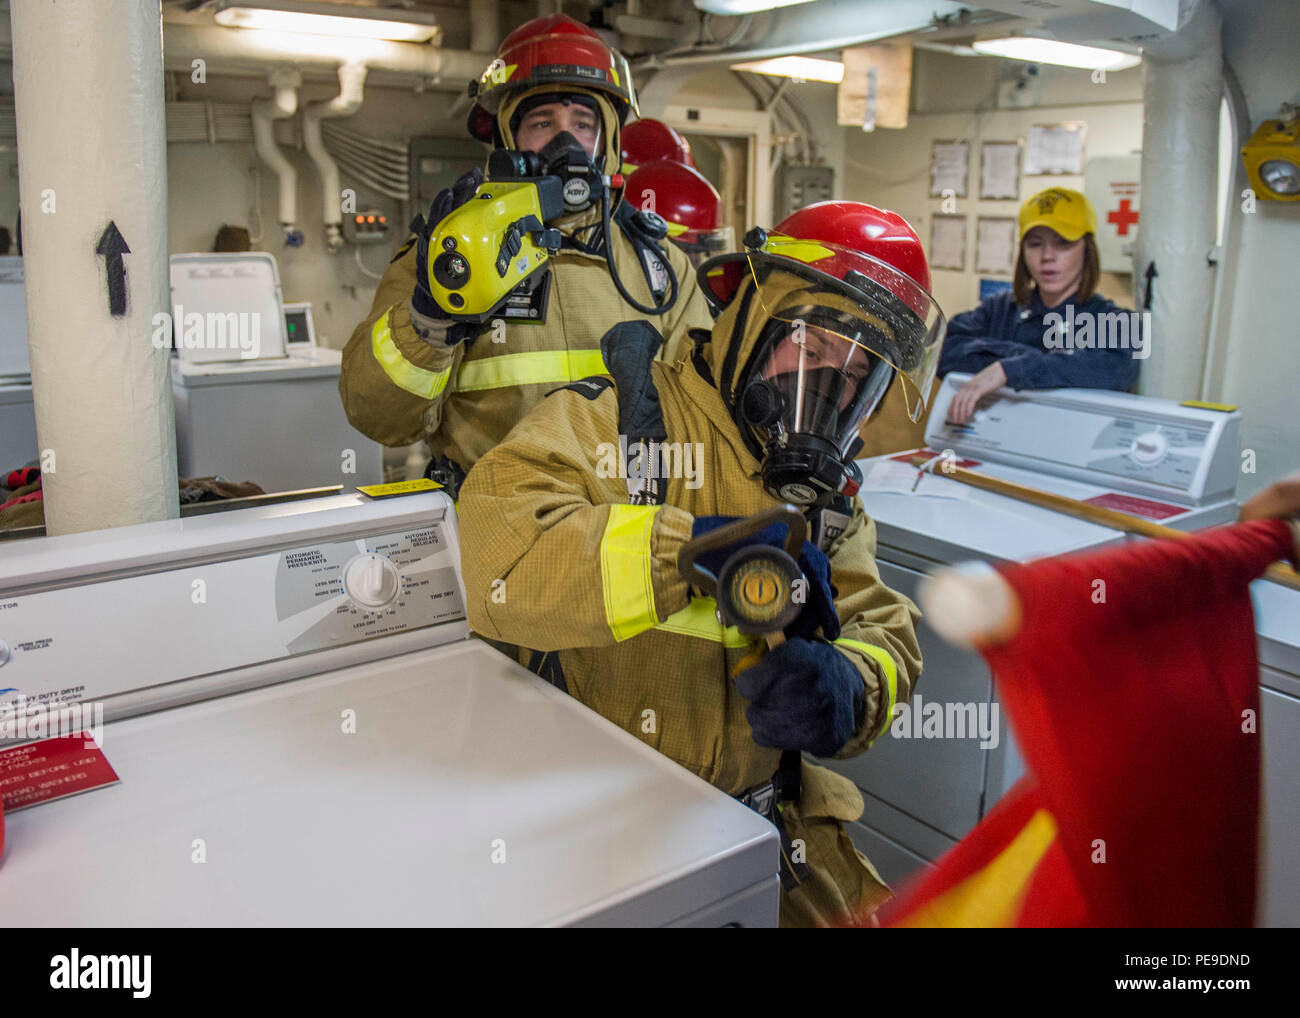 151115-N-YL073-105 GULF OF ADEN (Nov. 15, 2015) Logistics Specialist 3rd Class Nolan Prinze, from Stockton, Calif., front, and Damage Controlman Fireman Heath Simpson, from Castalian Springs, Tenn., fight a simulated fire during a general quarters drill aboard the amphibious assault ship USS Kearsarge (LHD 3). Kearsarge is the flagship for the Kearsarge Amphibious Ready Group (ARG) and, with the embarked 26th Marine Expeditionary Unit (MEU), is deployed in support of maritime security operations and theater security cooperation efforts in the U.S. 5th Fleet area of operations. (U.S. Navy photo - Stock Image